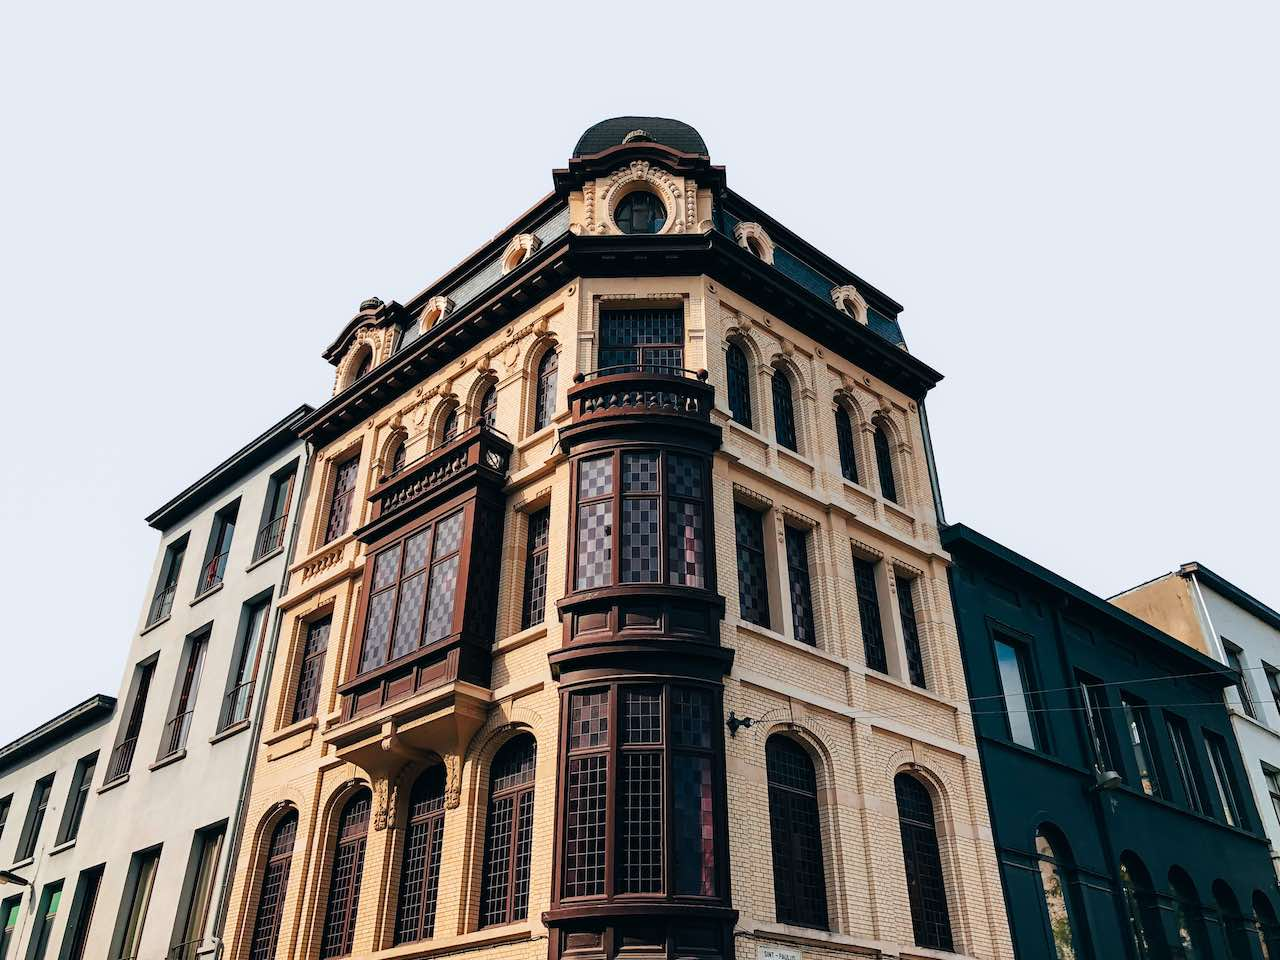 Antwerp architecture